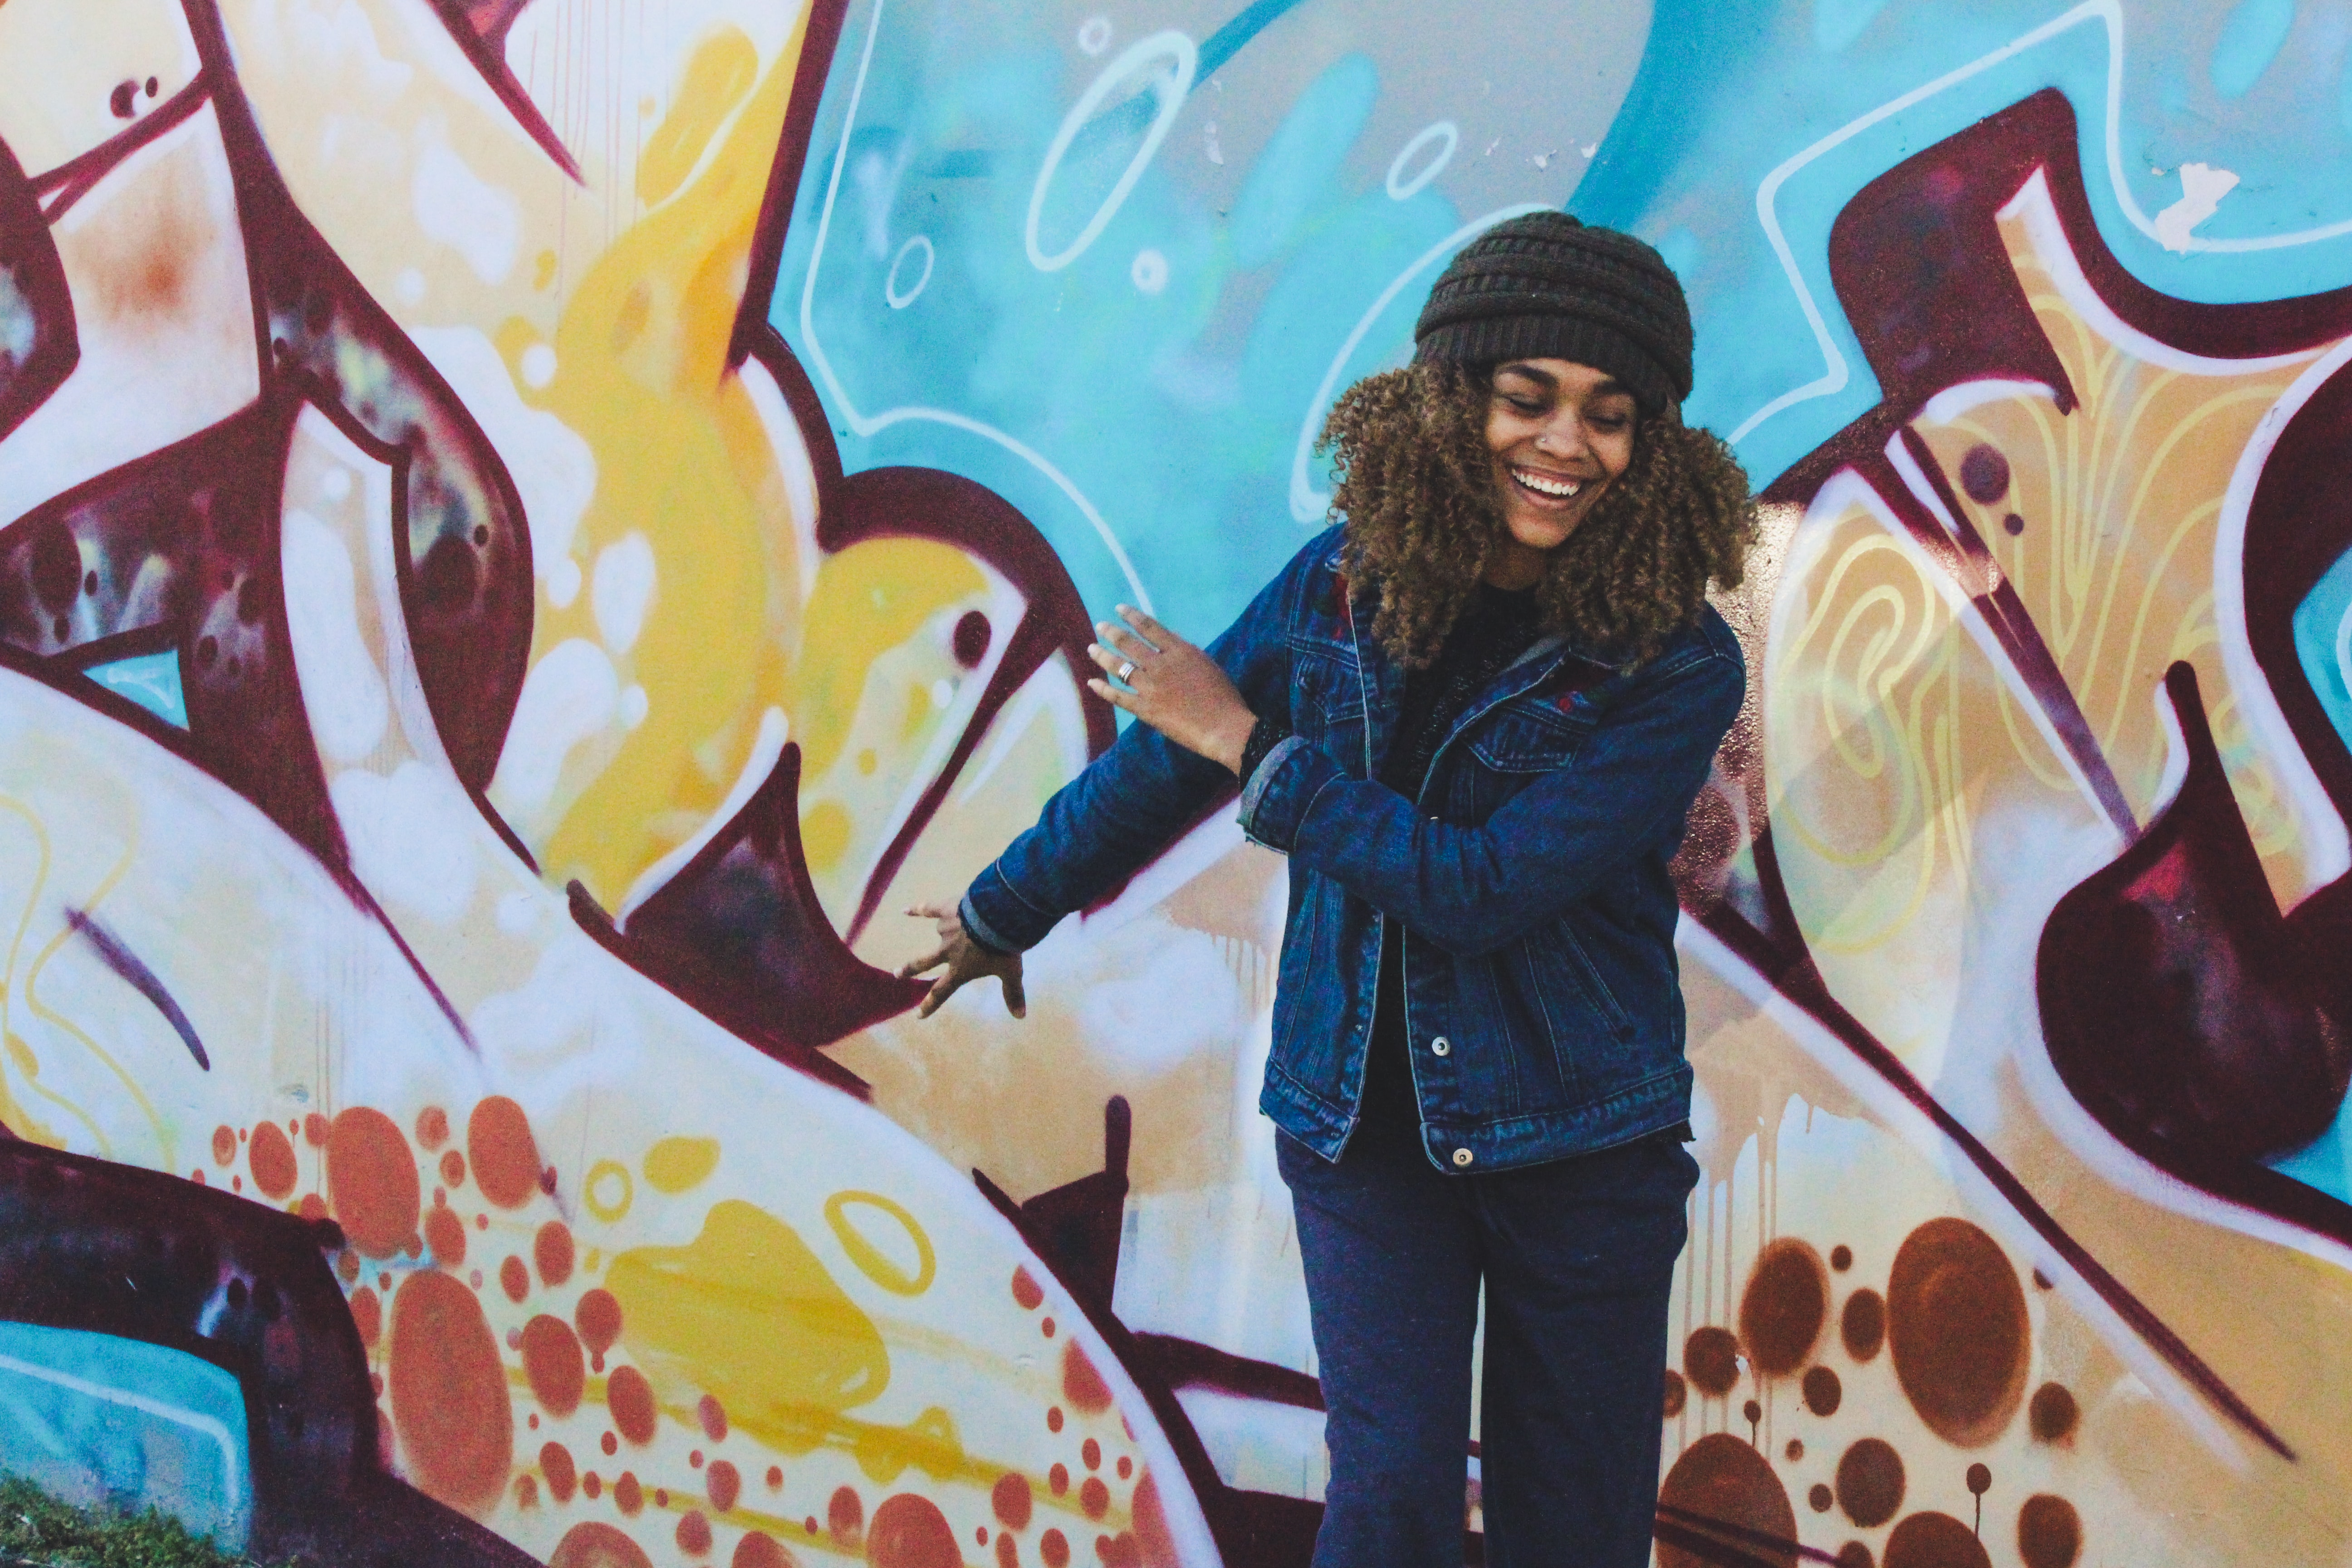 Young woman wearing denim jacket and beanie smiling in front of bright graffiti wall